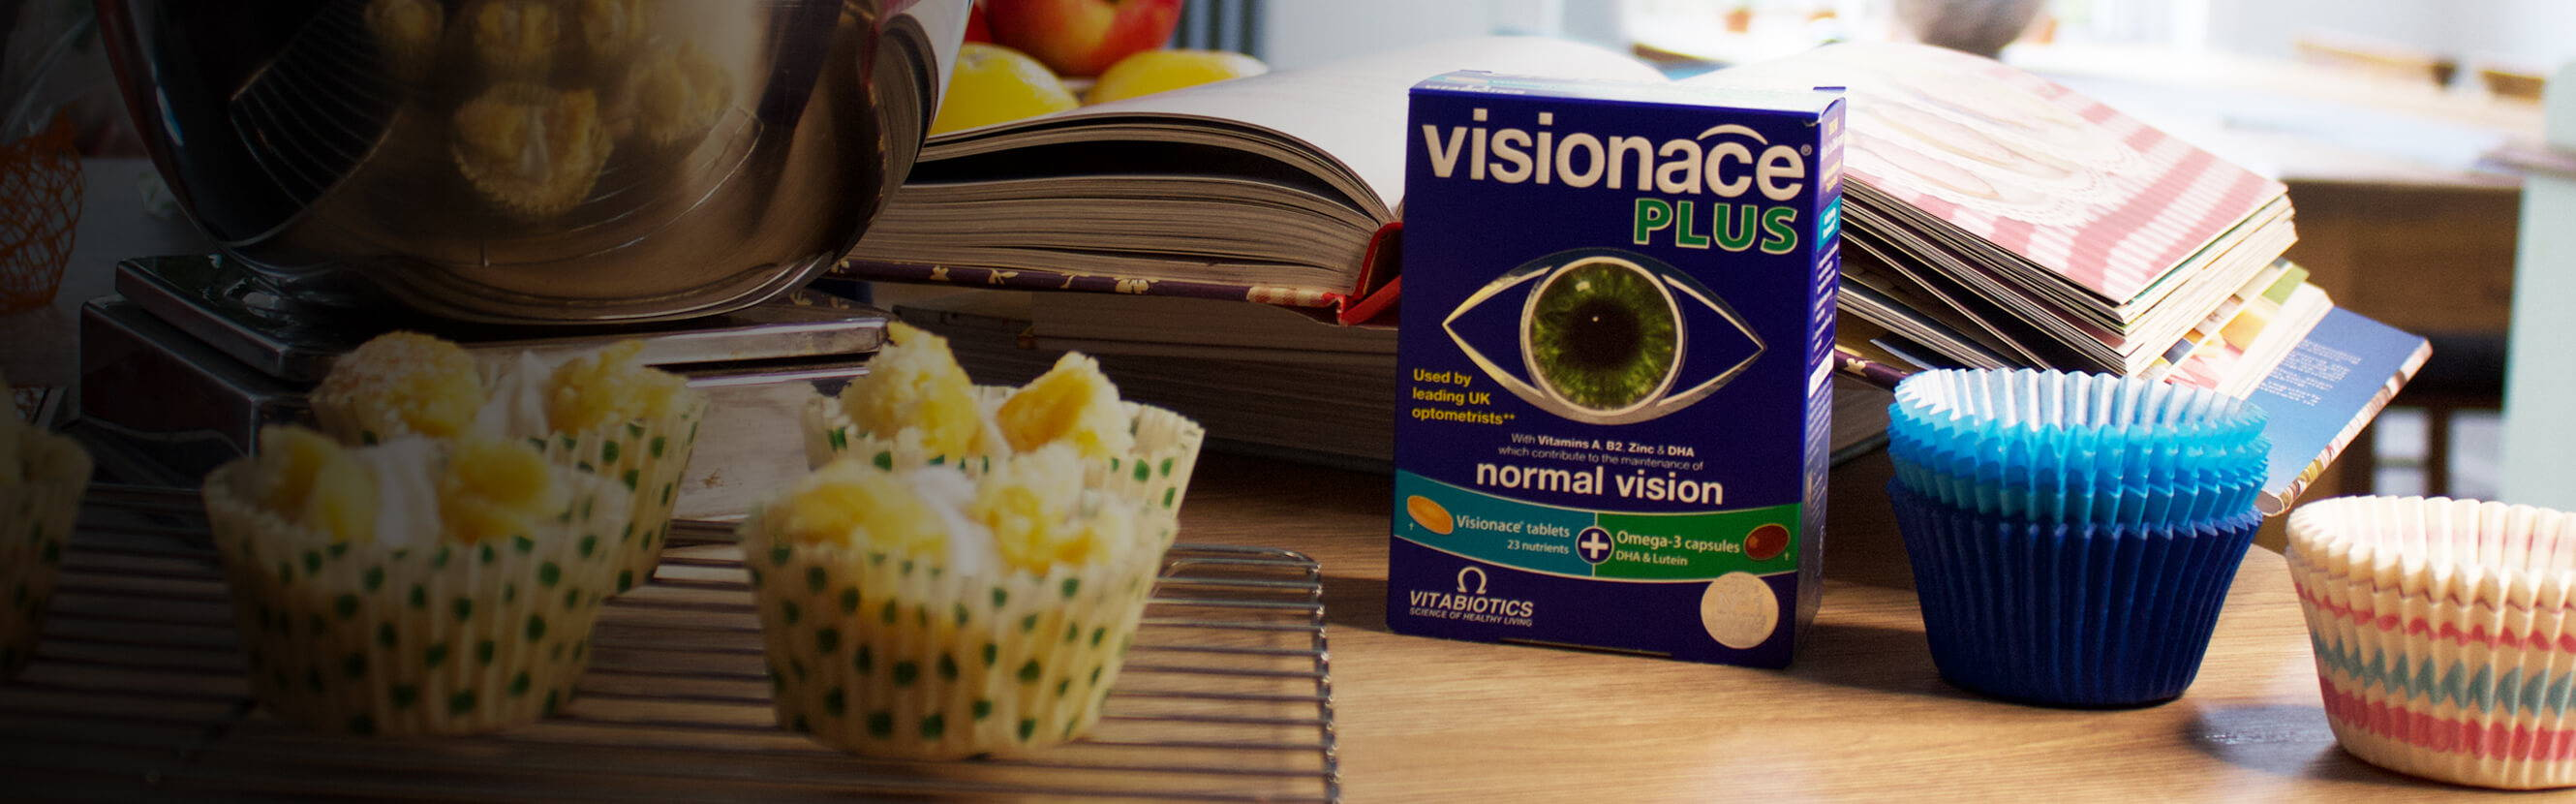 DHA is an essential fatty acid that is known to help support maintenance of normal vision. The Omega-3 capsules in Visionace plus are rich in DHA that play an important structural and functional role in your retina. All in addition to our tried and tested Visionace formula which provides all round daily nutrition.